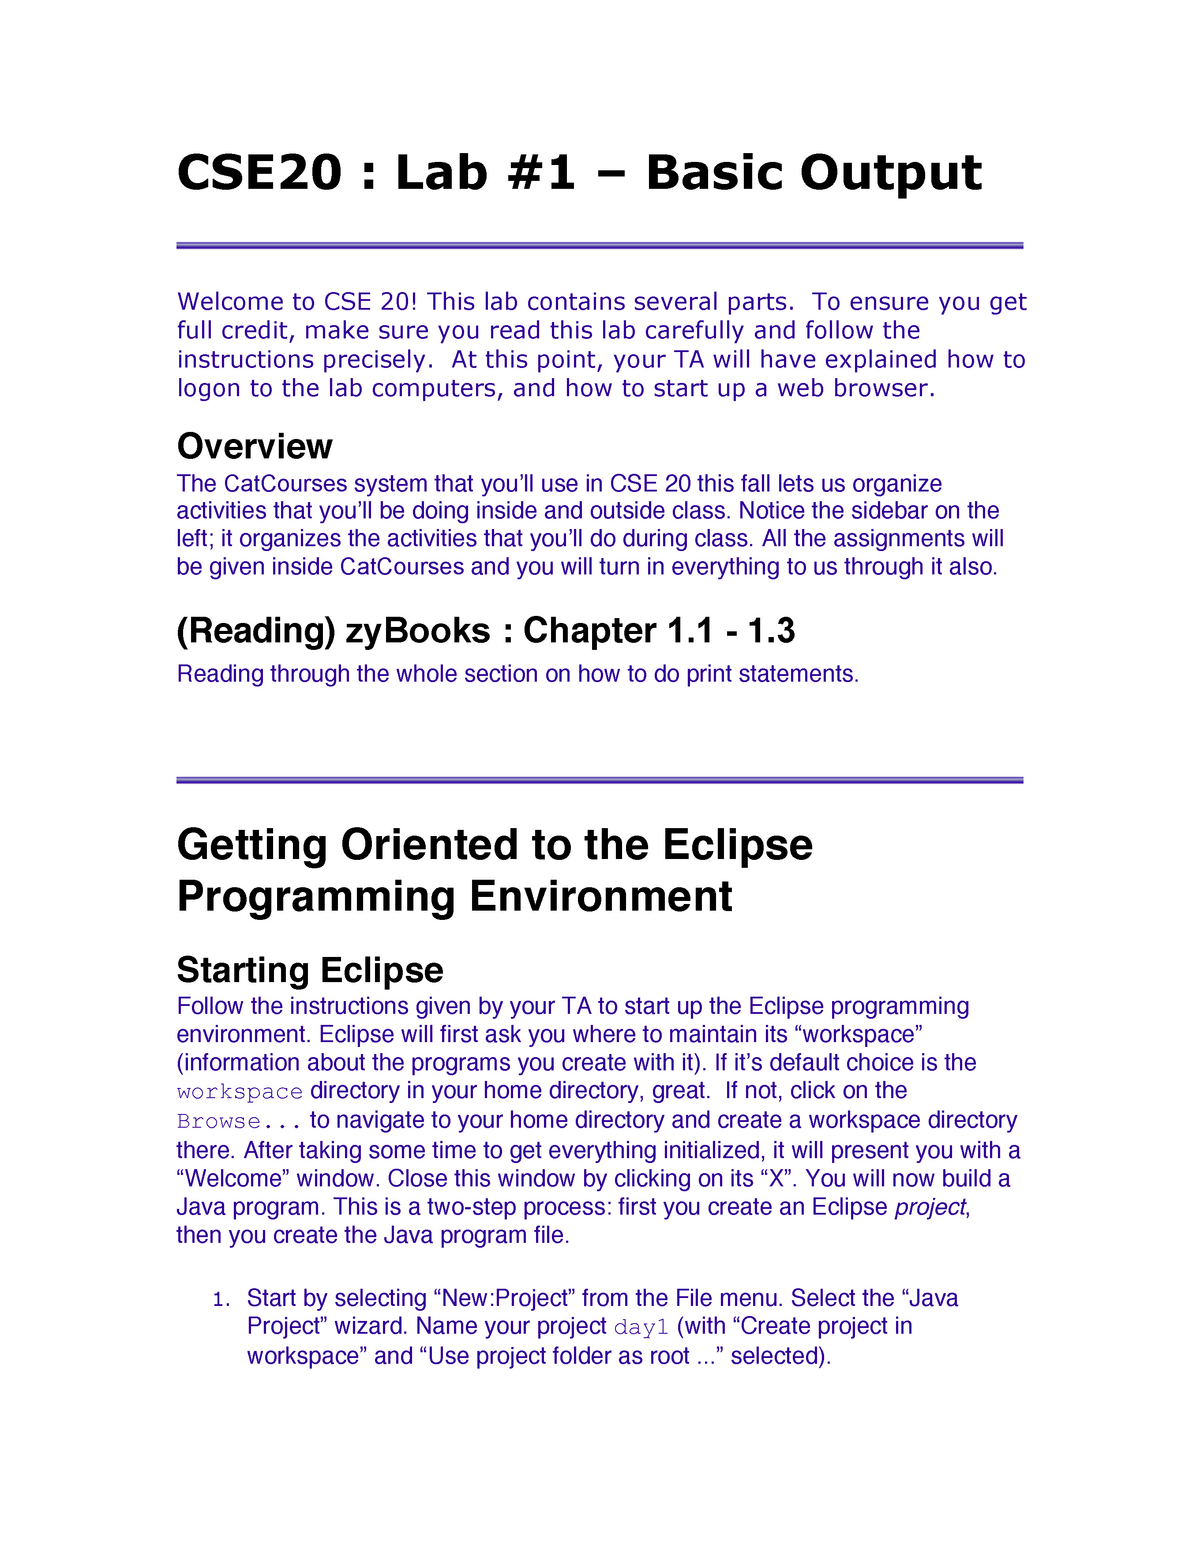 CSE 20 Lab 01: Basic Output - CSE 020: Introduction To Computing I